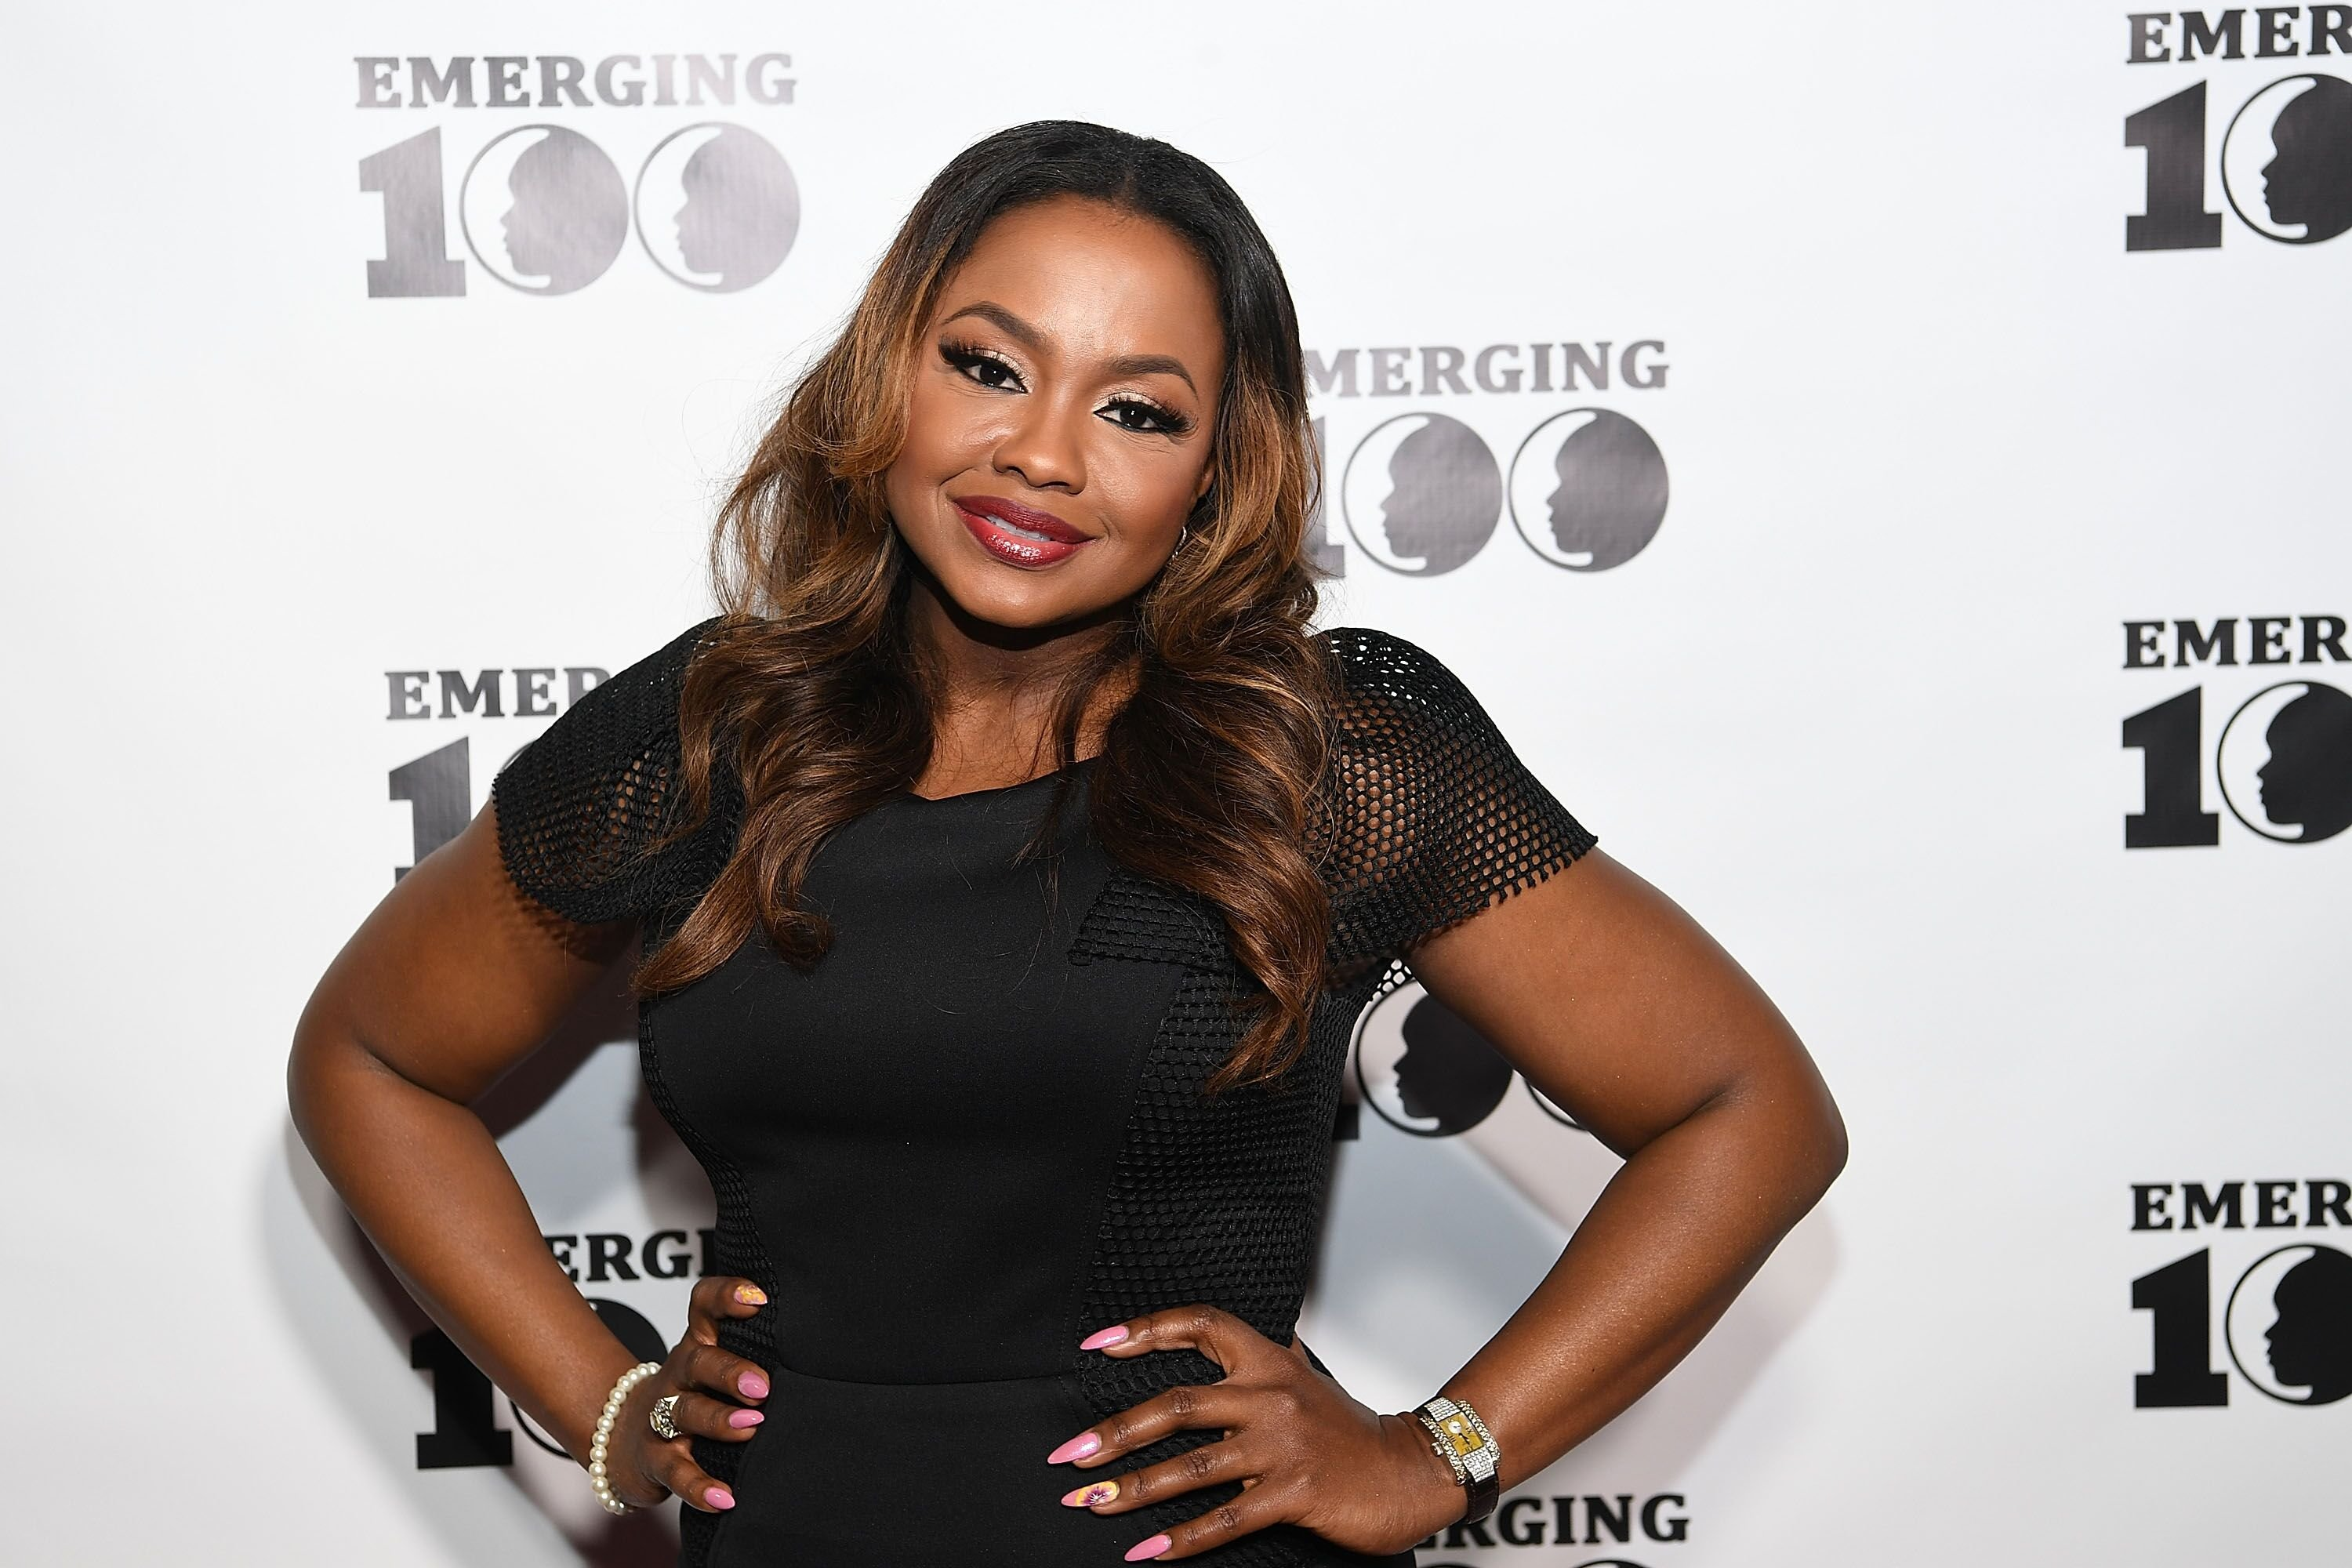 Phaedra at the red carpet of the Emerging 100 Event  | Source: Getty Images/GlobalImagesUkraine